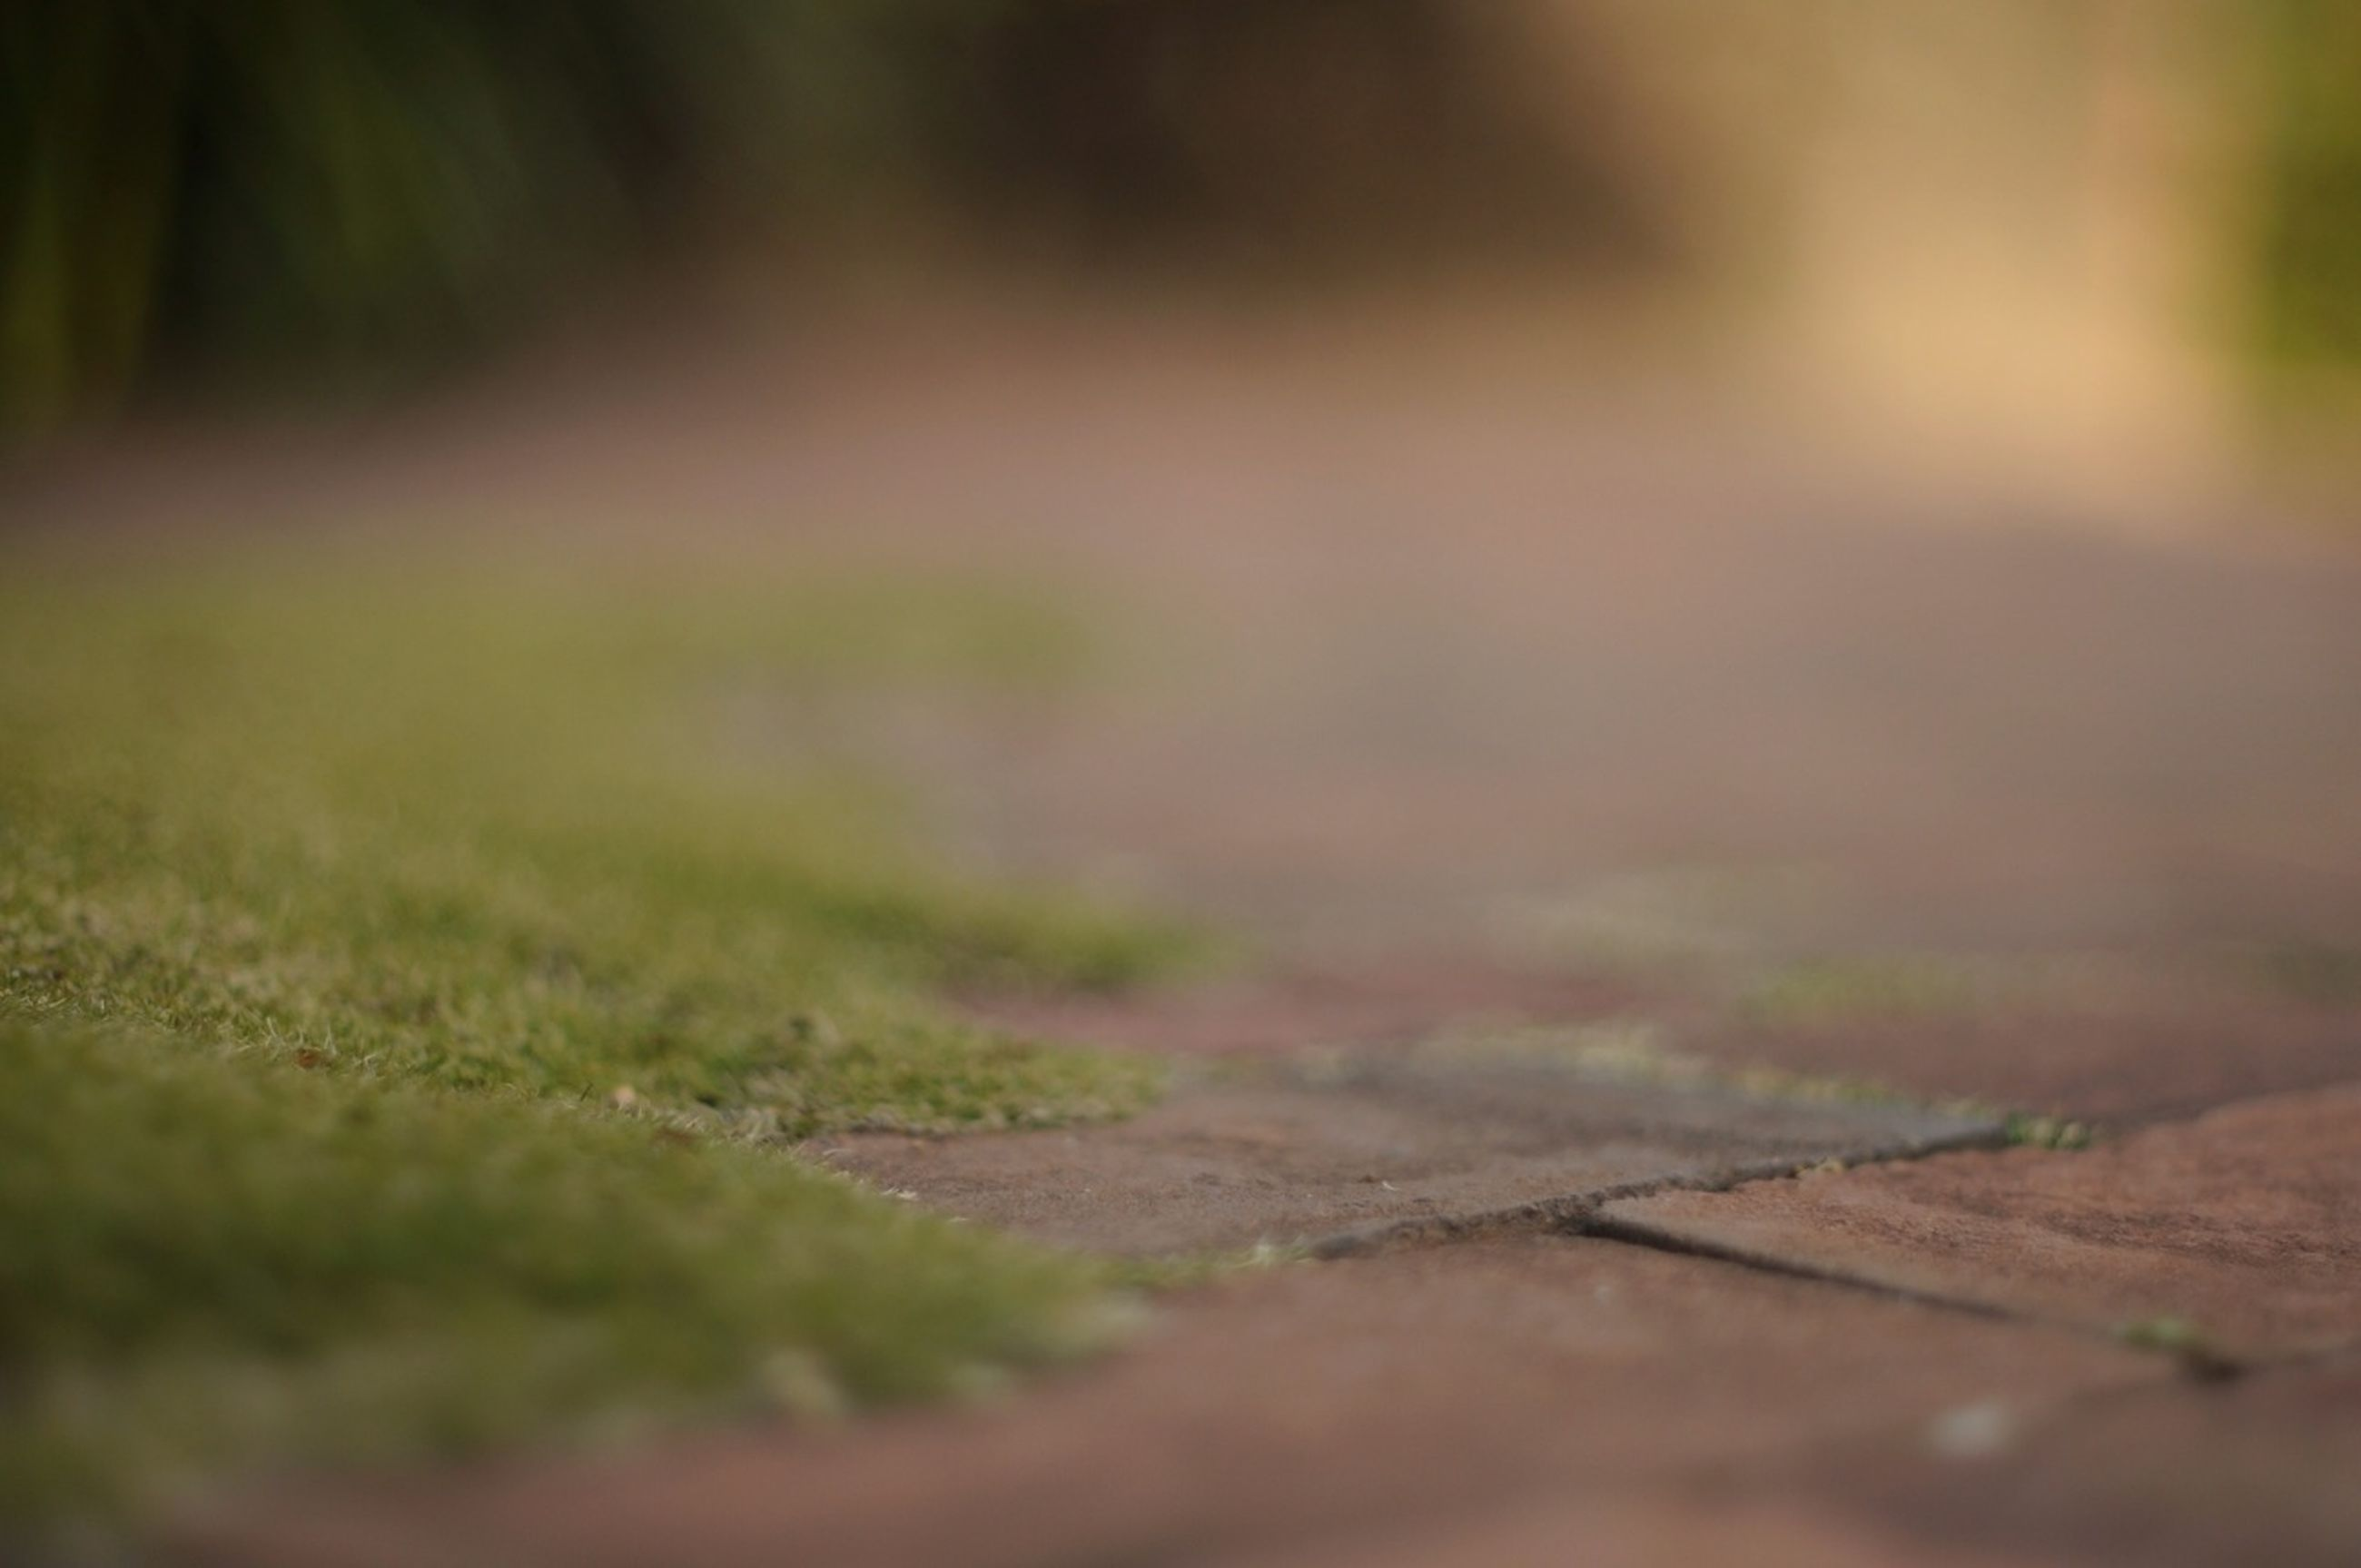 selective focus, surface level, focus on foreground, close-up, nature, outdoors, day, grass, no people, growth, tranquility, plant, green color, field, focus on background, leaf, textured, footpath, moss, the way forward